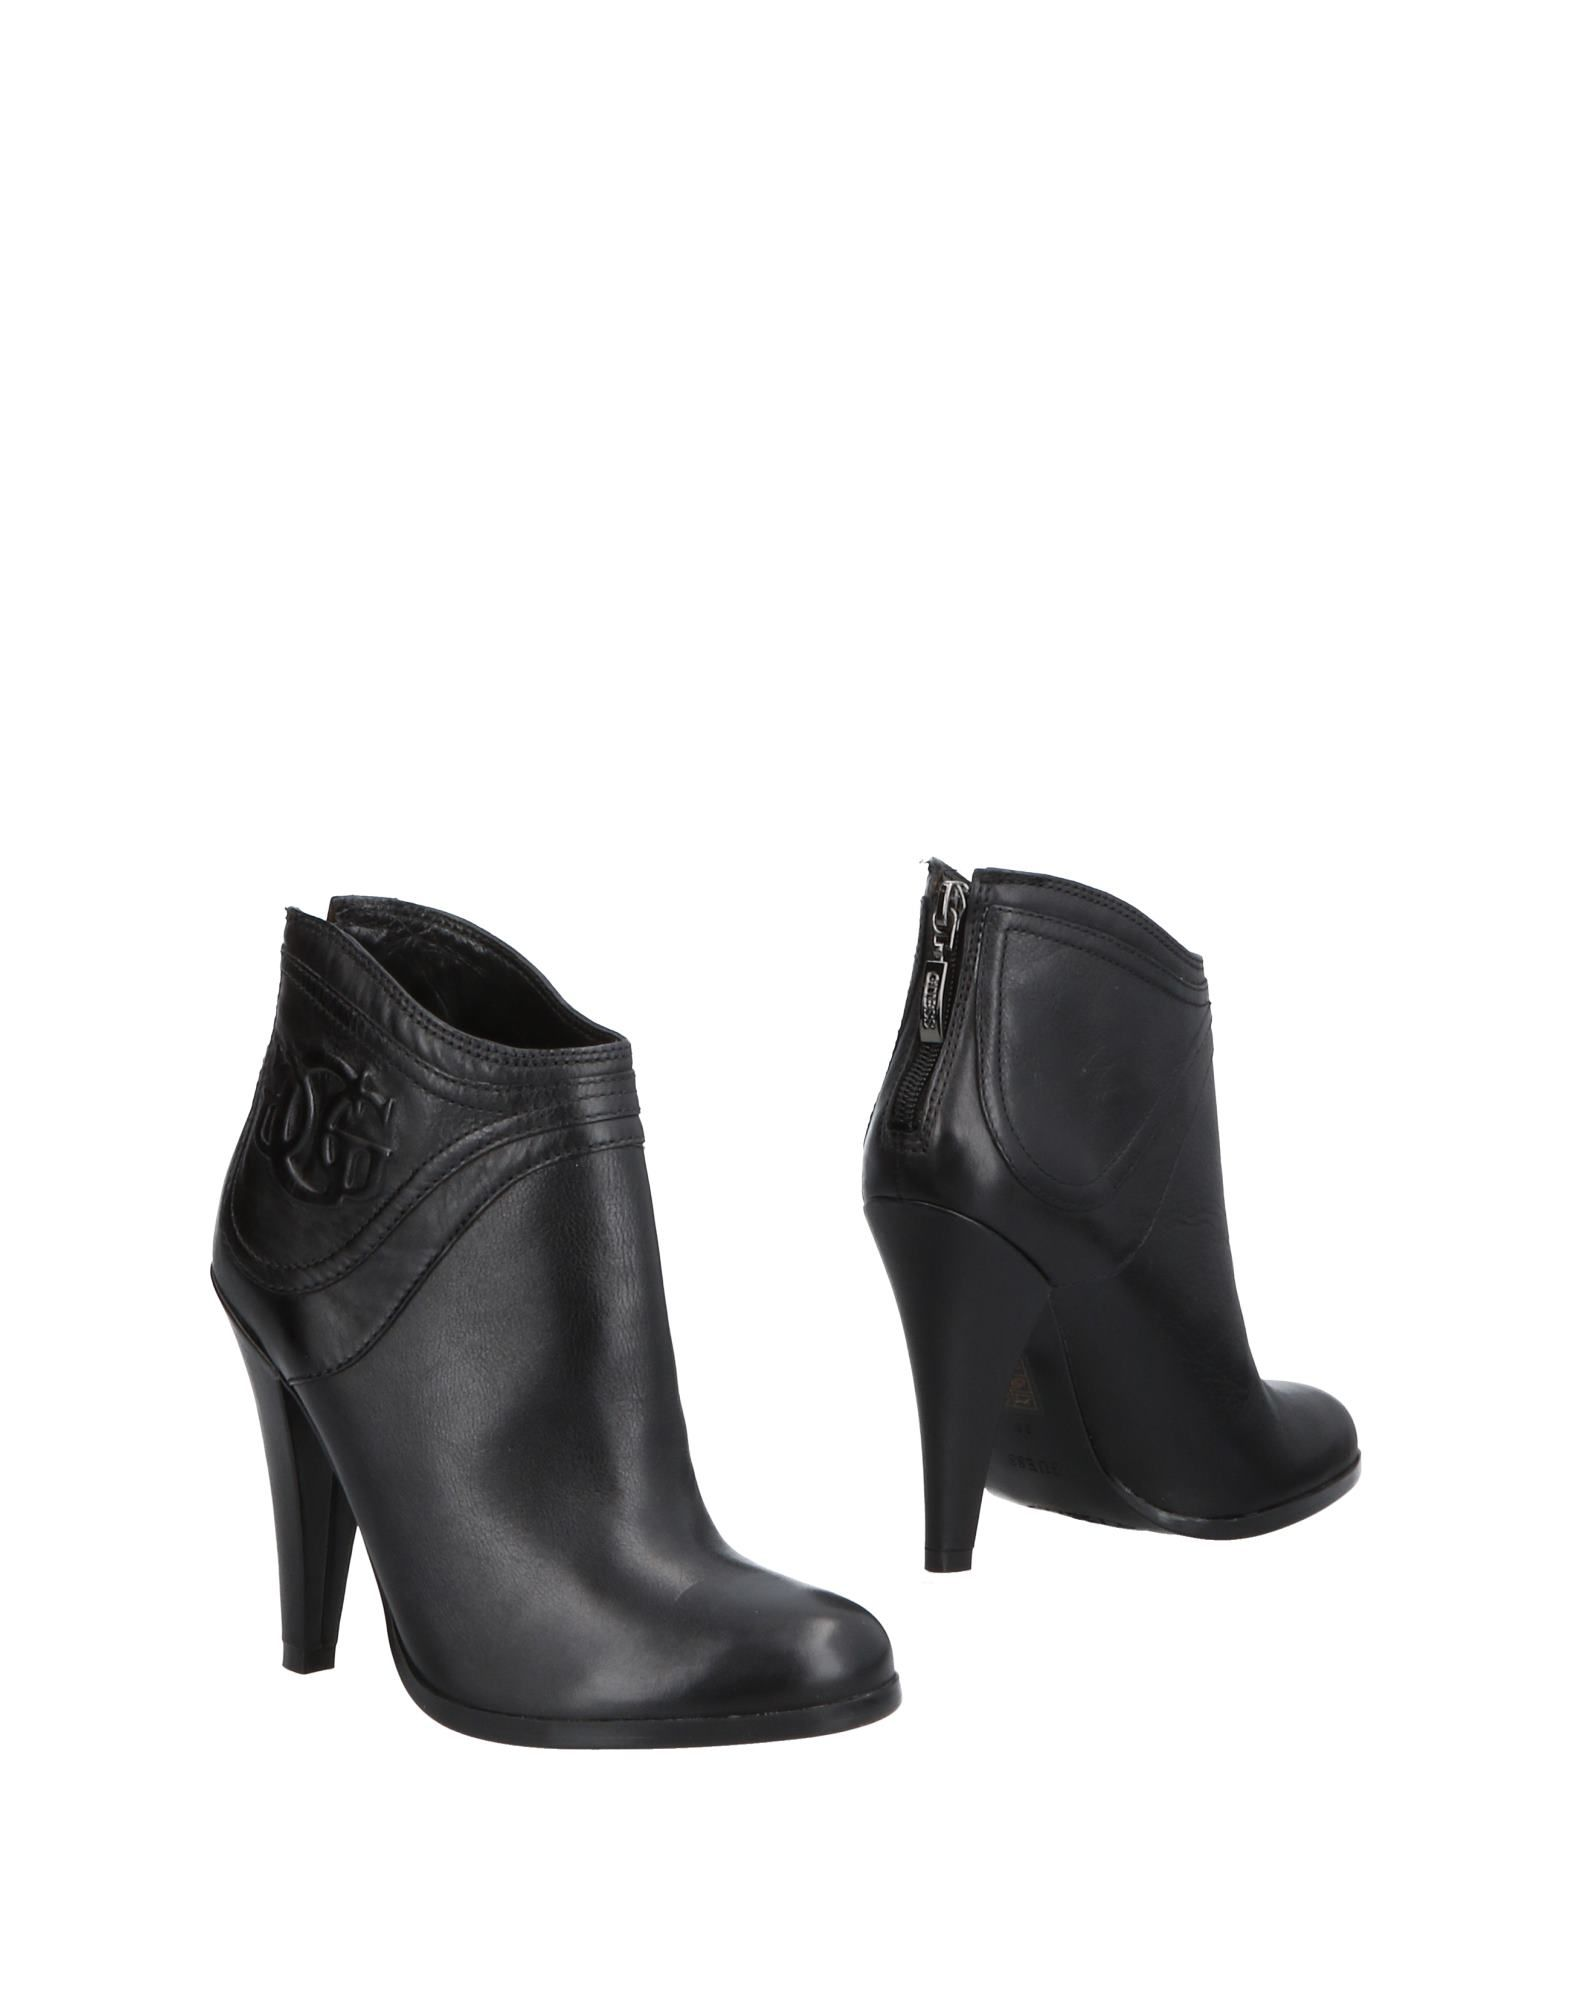 Guess By Marciano Ankle By Boot - Women Guess By Ankle Marciano Ankle Boots online on  United Kingdom - 11506763HQ 36eb03